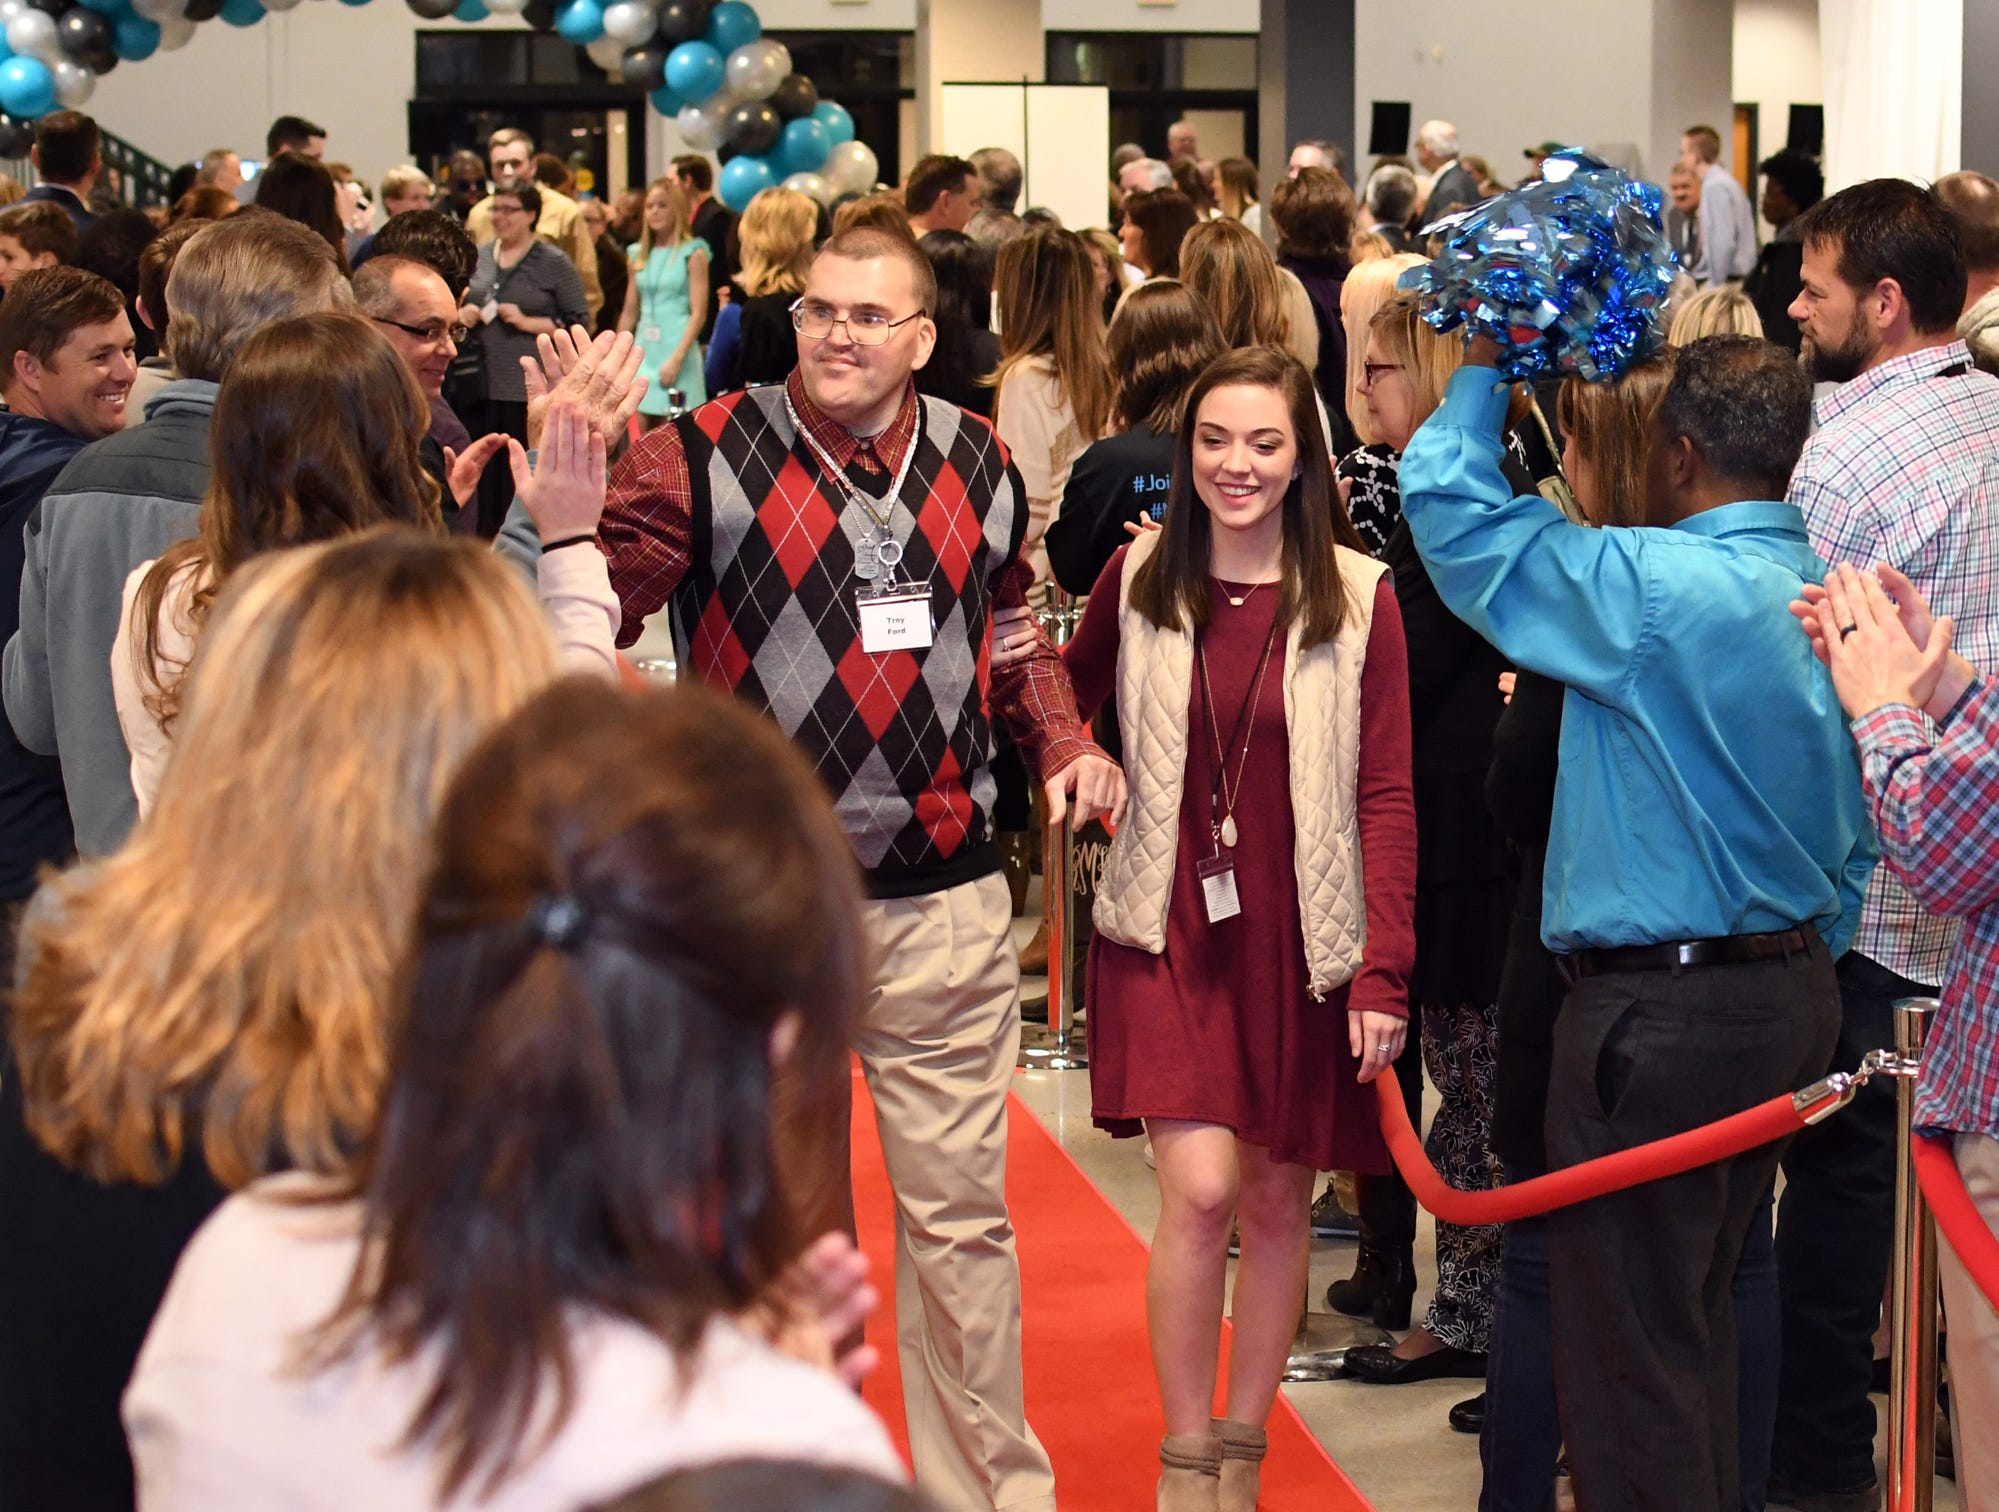 Guests walk down the red carpet during the Night to Shine Prom at Temple Baptist Church on Friday, February 8, 2019. Churches around the world hosted the prom by the Tim Tebow Foundation for people with special needs.